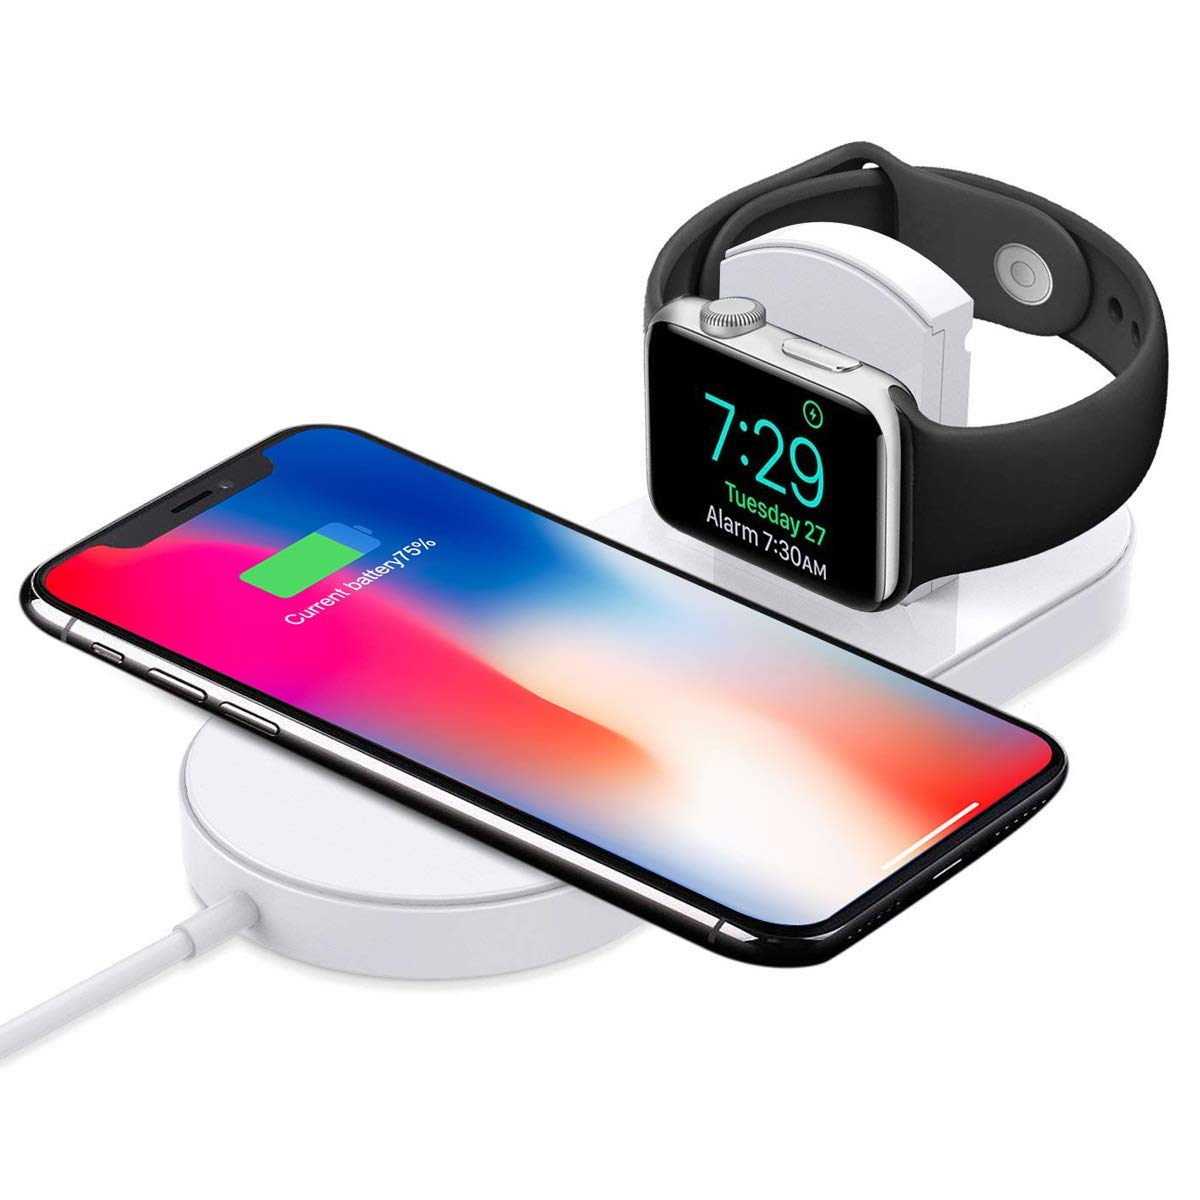 Generic Wireless Charger, 2 in 1 Stand Charging Pad, Fast Receiver Certified Qi Compatible with iPhone Xs/XS Max/XR/X/8 Plus/8, iWatch Series 3/2, Samsung Galaxy Note 8/S8 Plus/S7 Edge by Generic